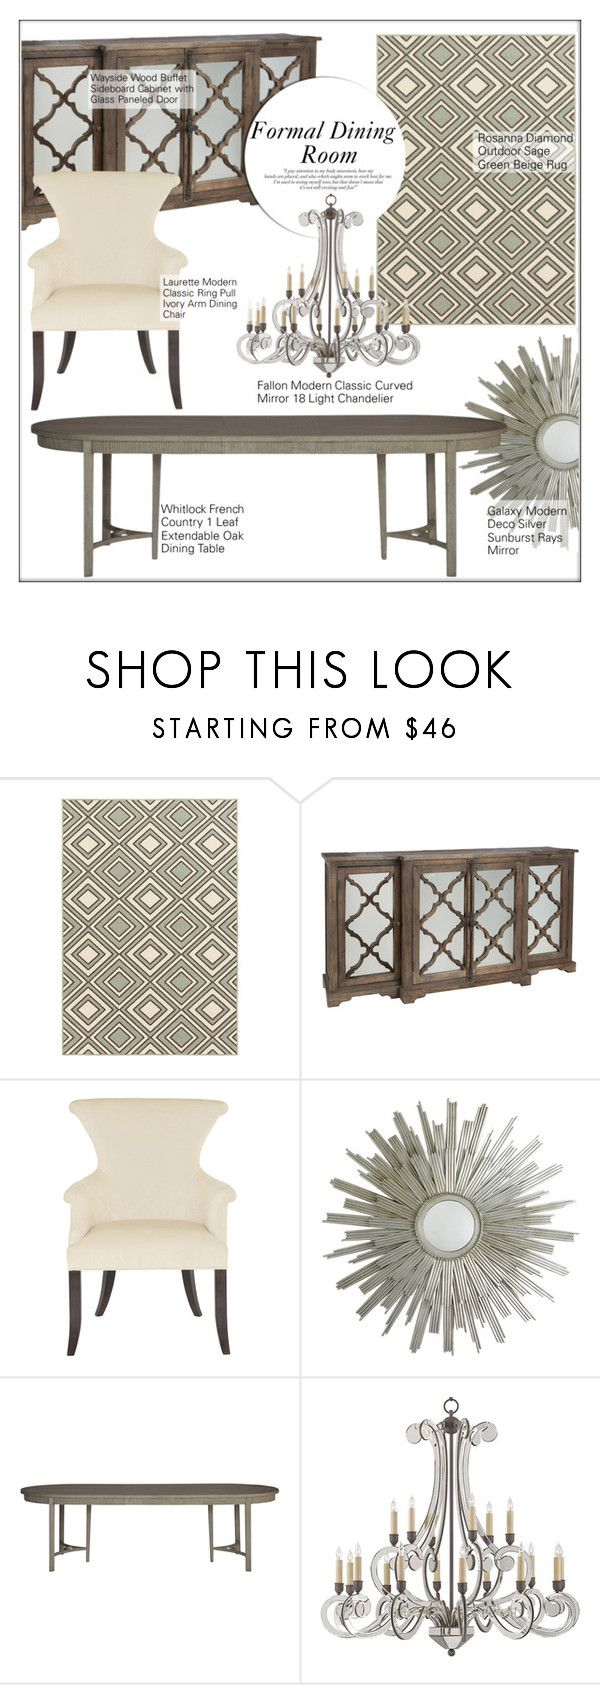 """""""Formal Dining Room"""" by kathykuohome ❤ liked on Polyvore featuring interior, interiors, interior design, home, home decor, interior decorating, dining room, diningroom, Home and homeset"""